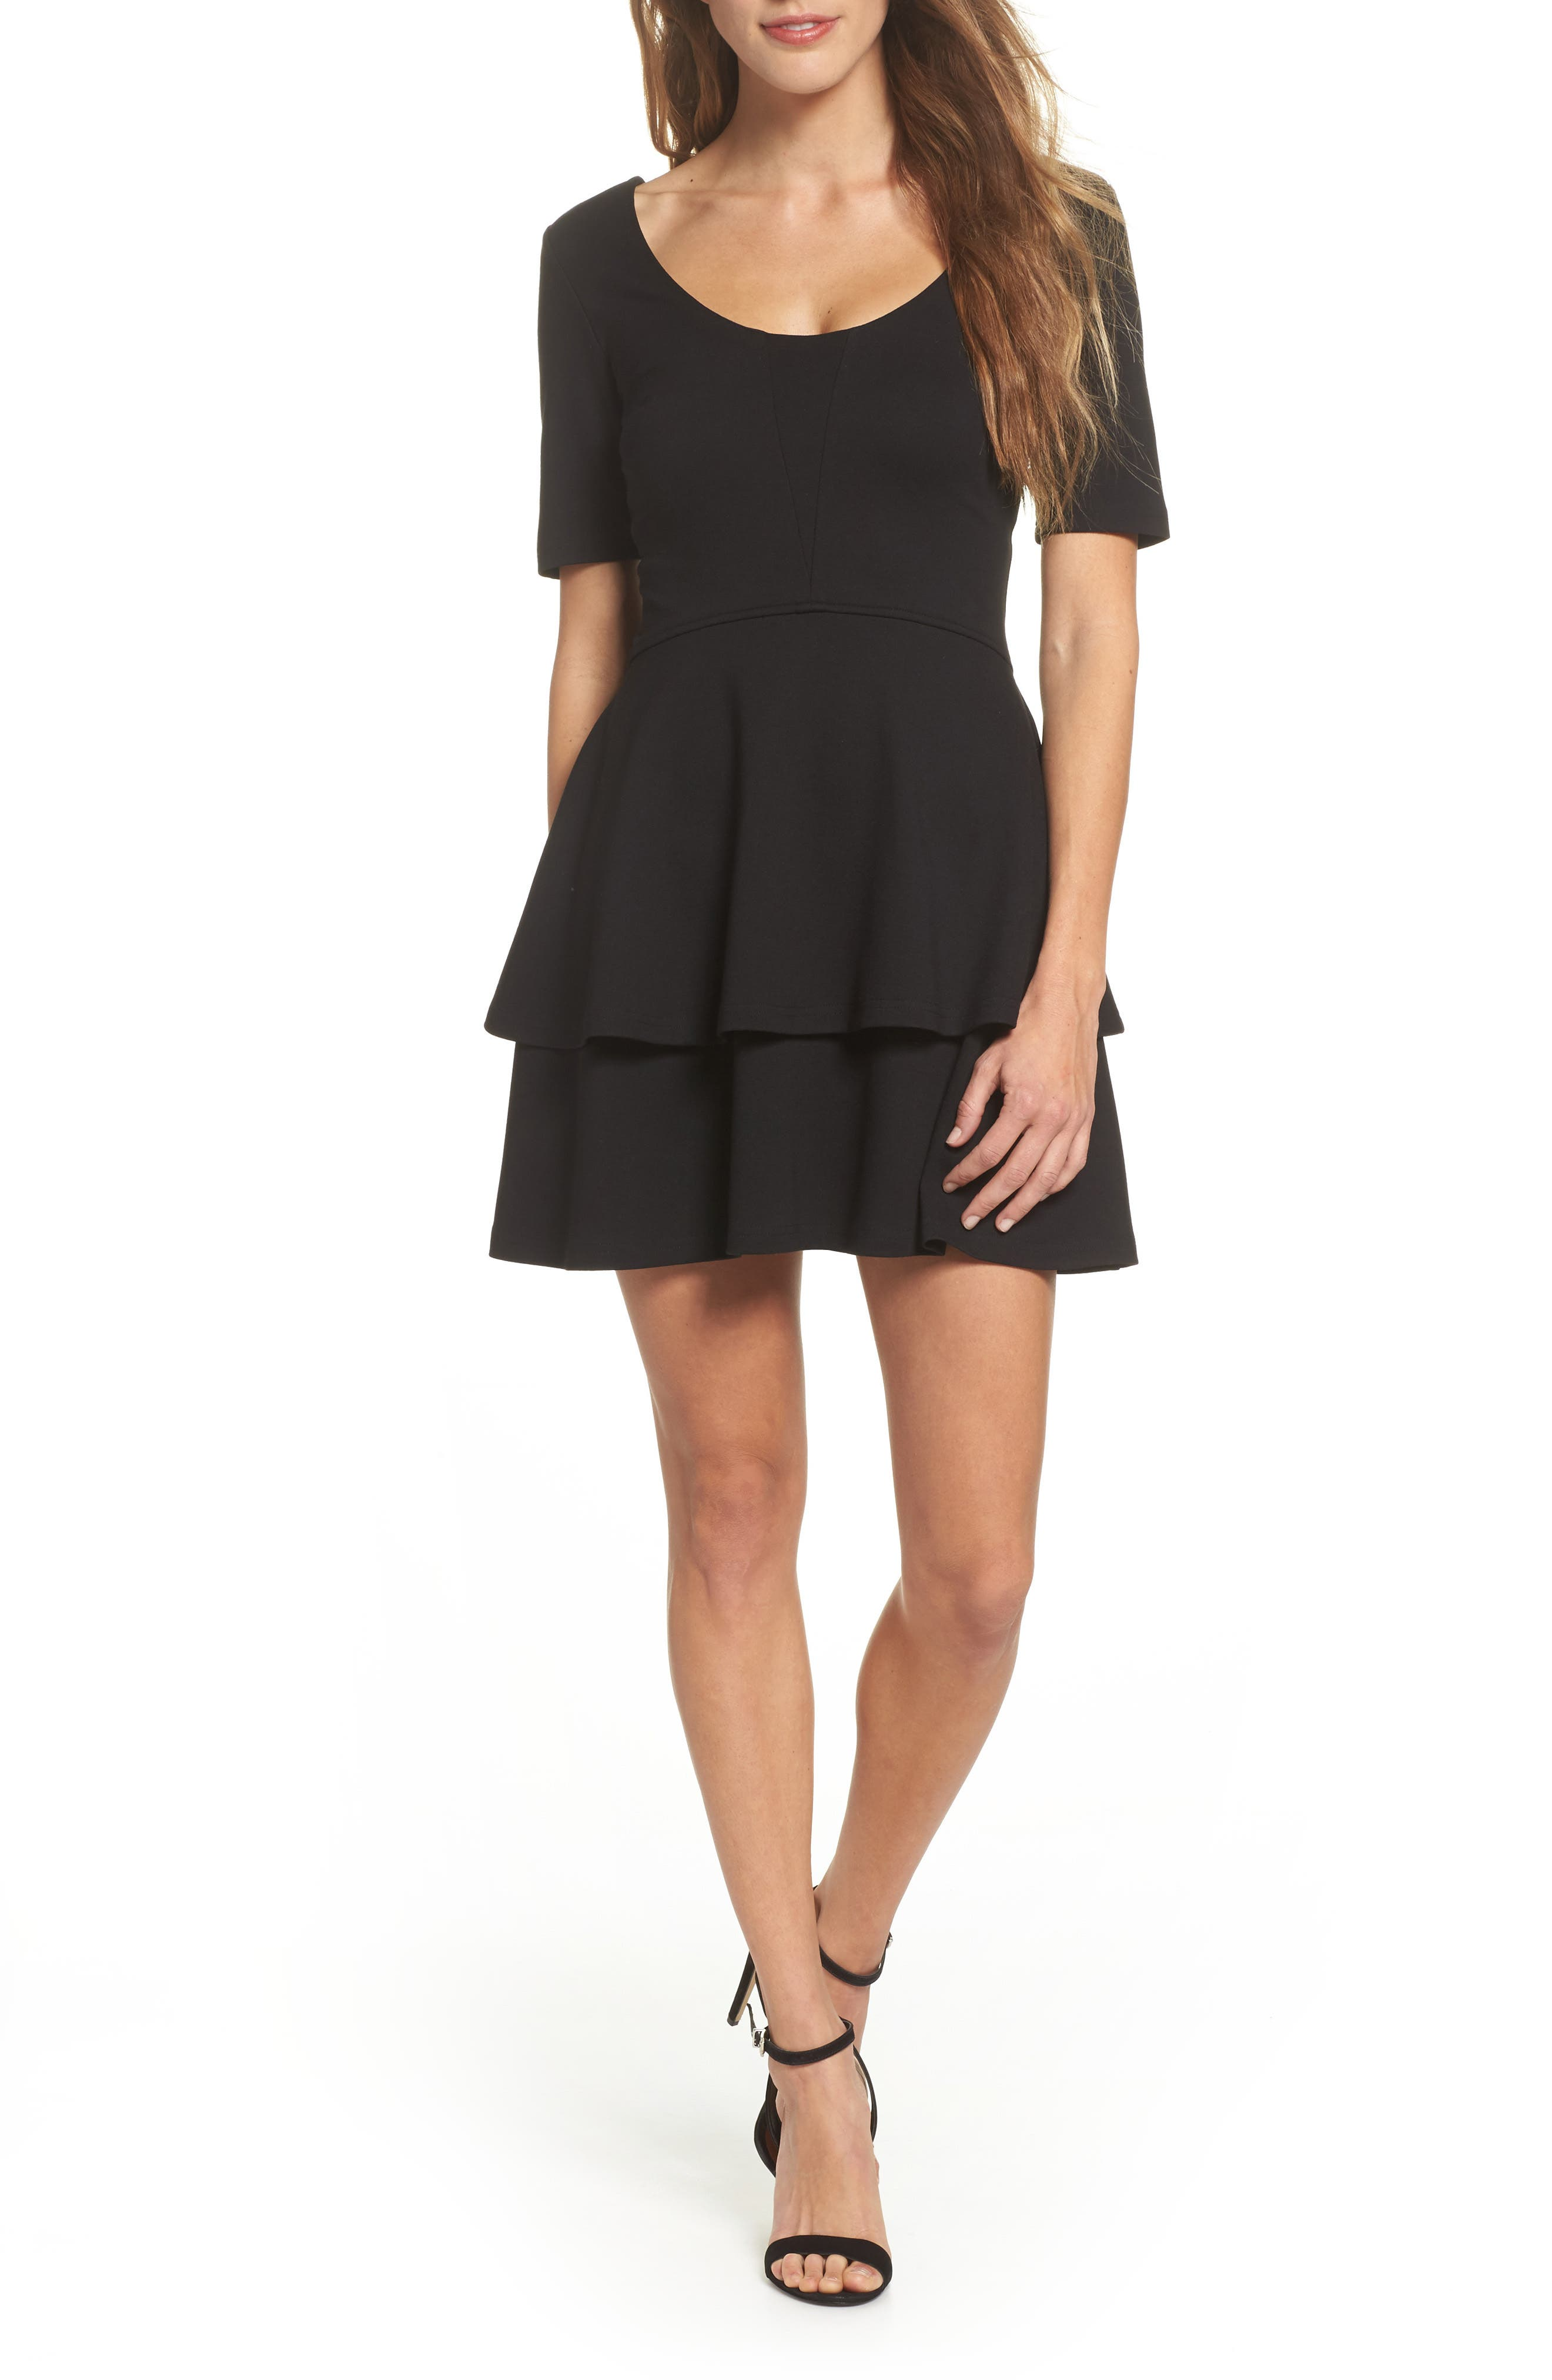 Isn't It Sweet Fit & Flare Dress,                         Main,                         color, Black